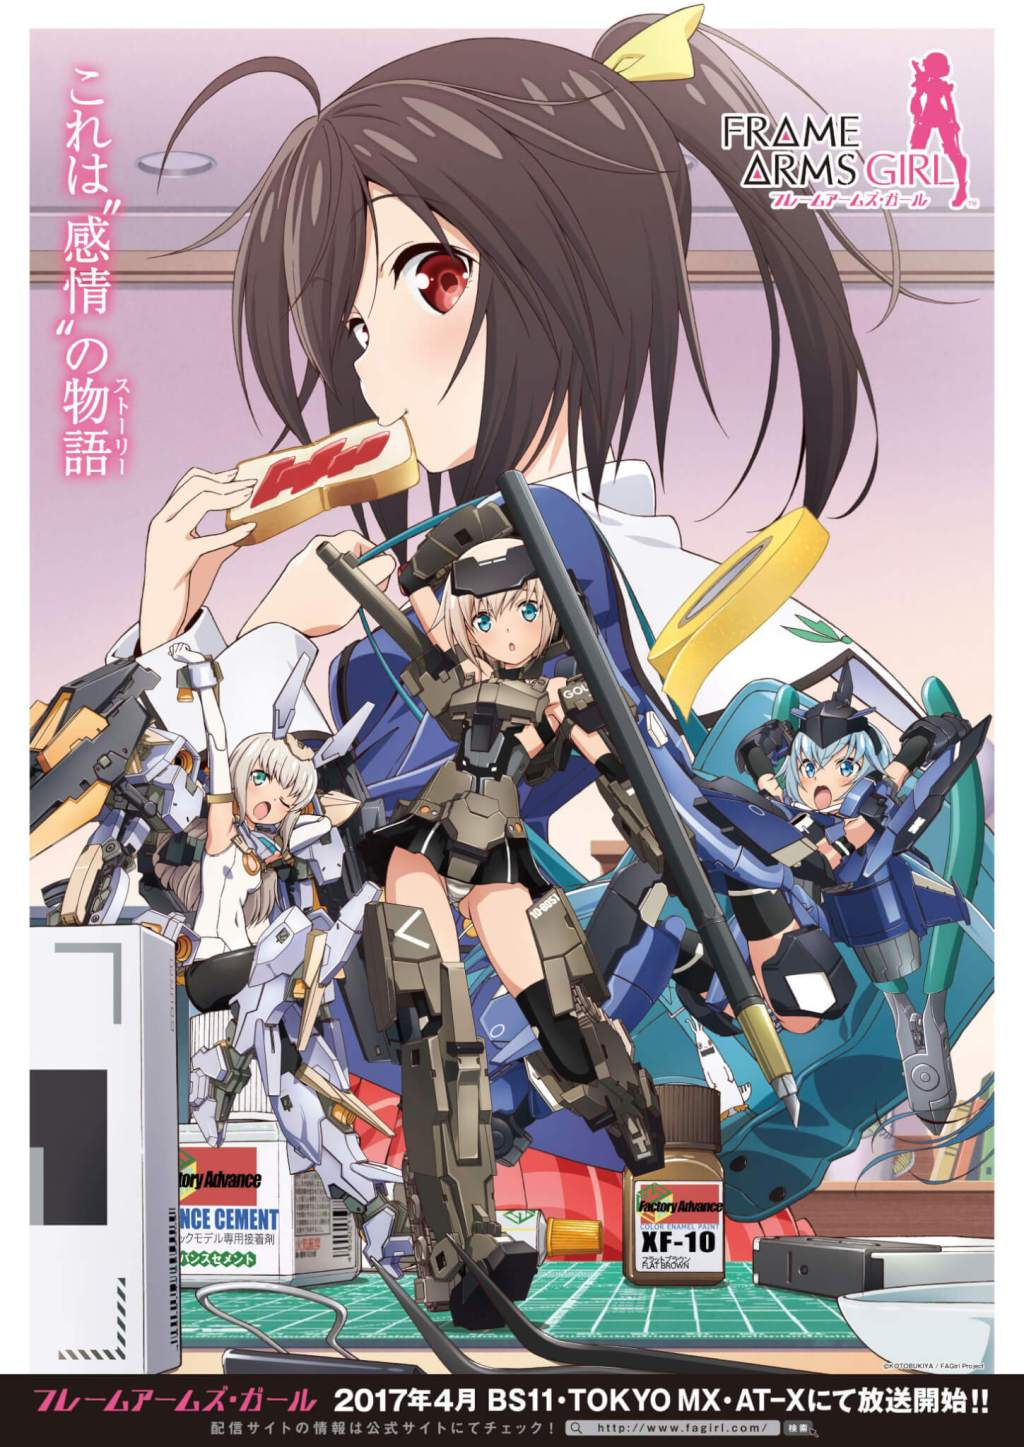 School's Cool with the Sweet Frame Arms Girl Supplies